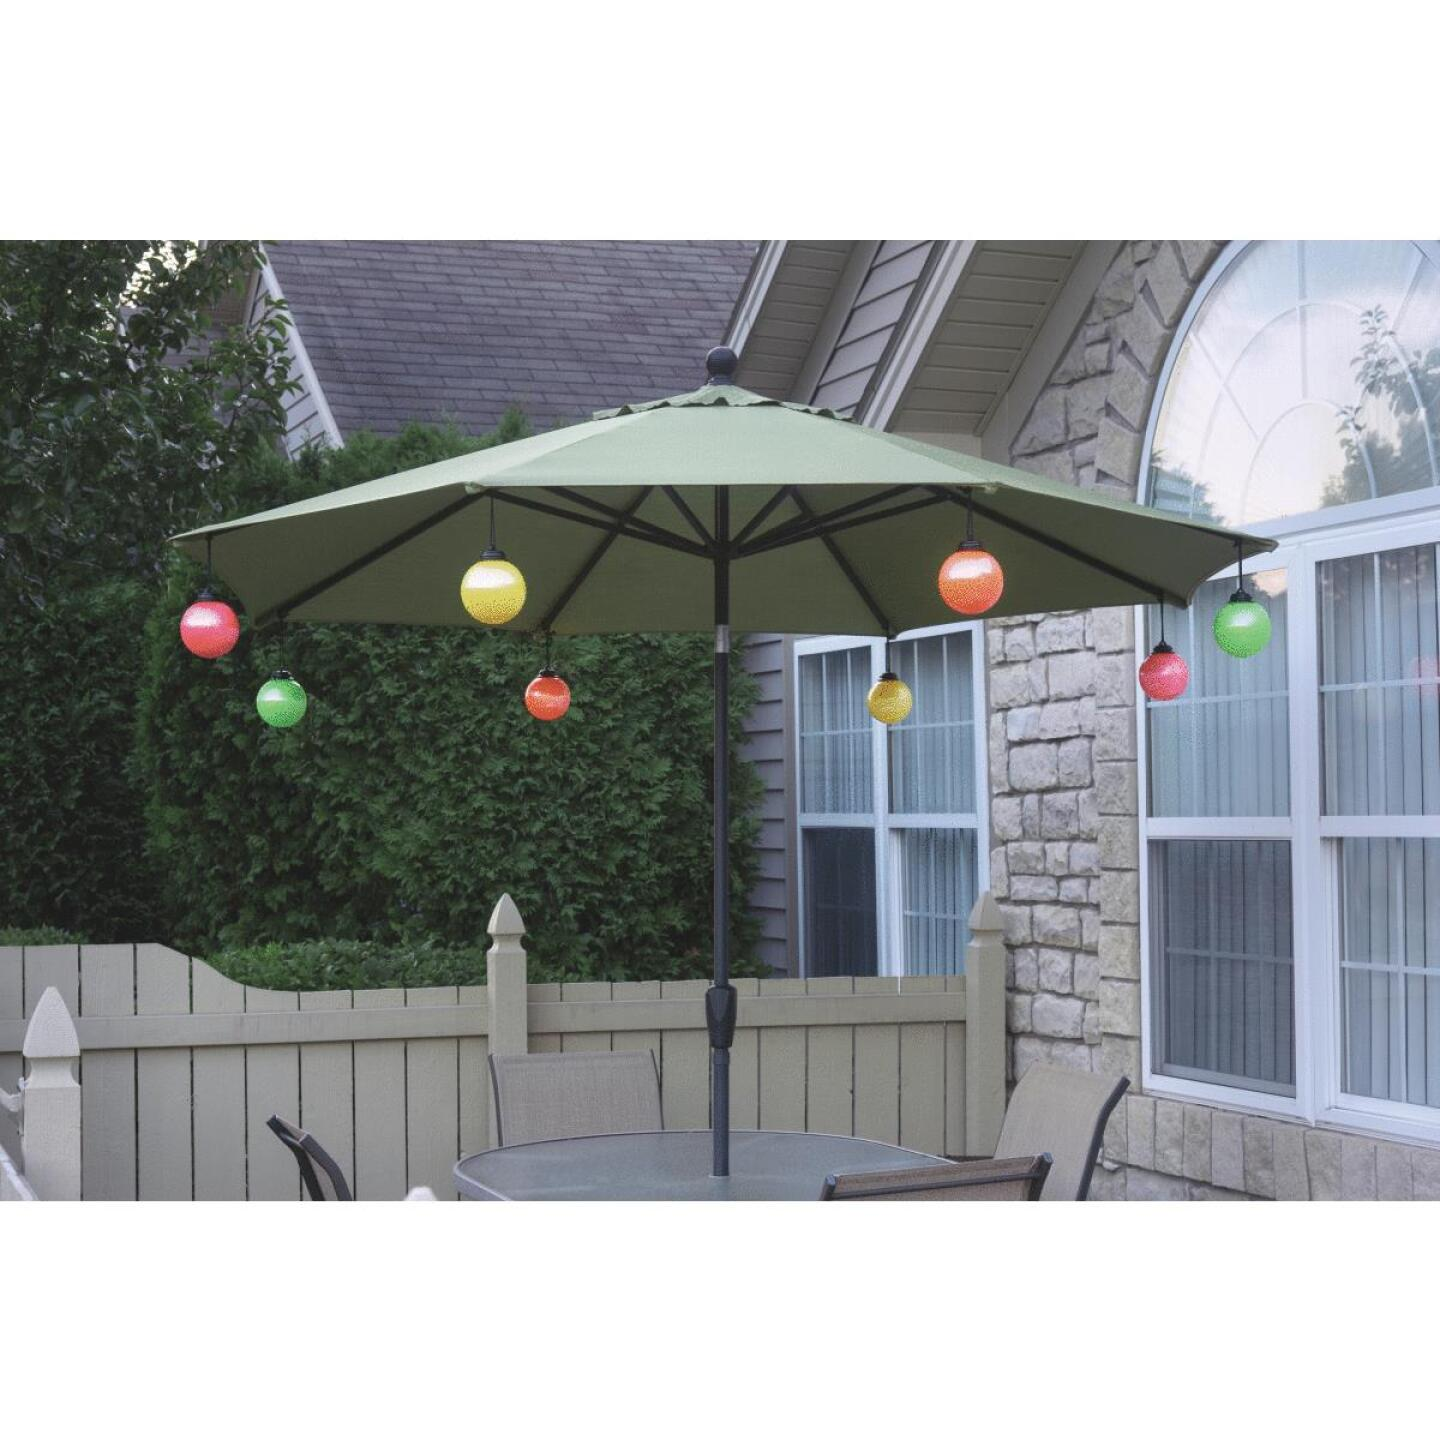 Xodus 5 In. LED Battery Operated Patio Umbrella Globe Light Image 2